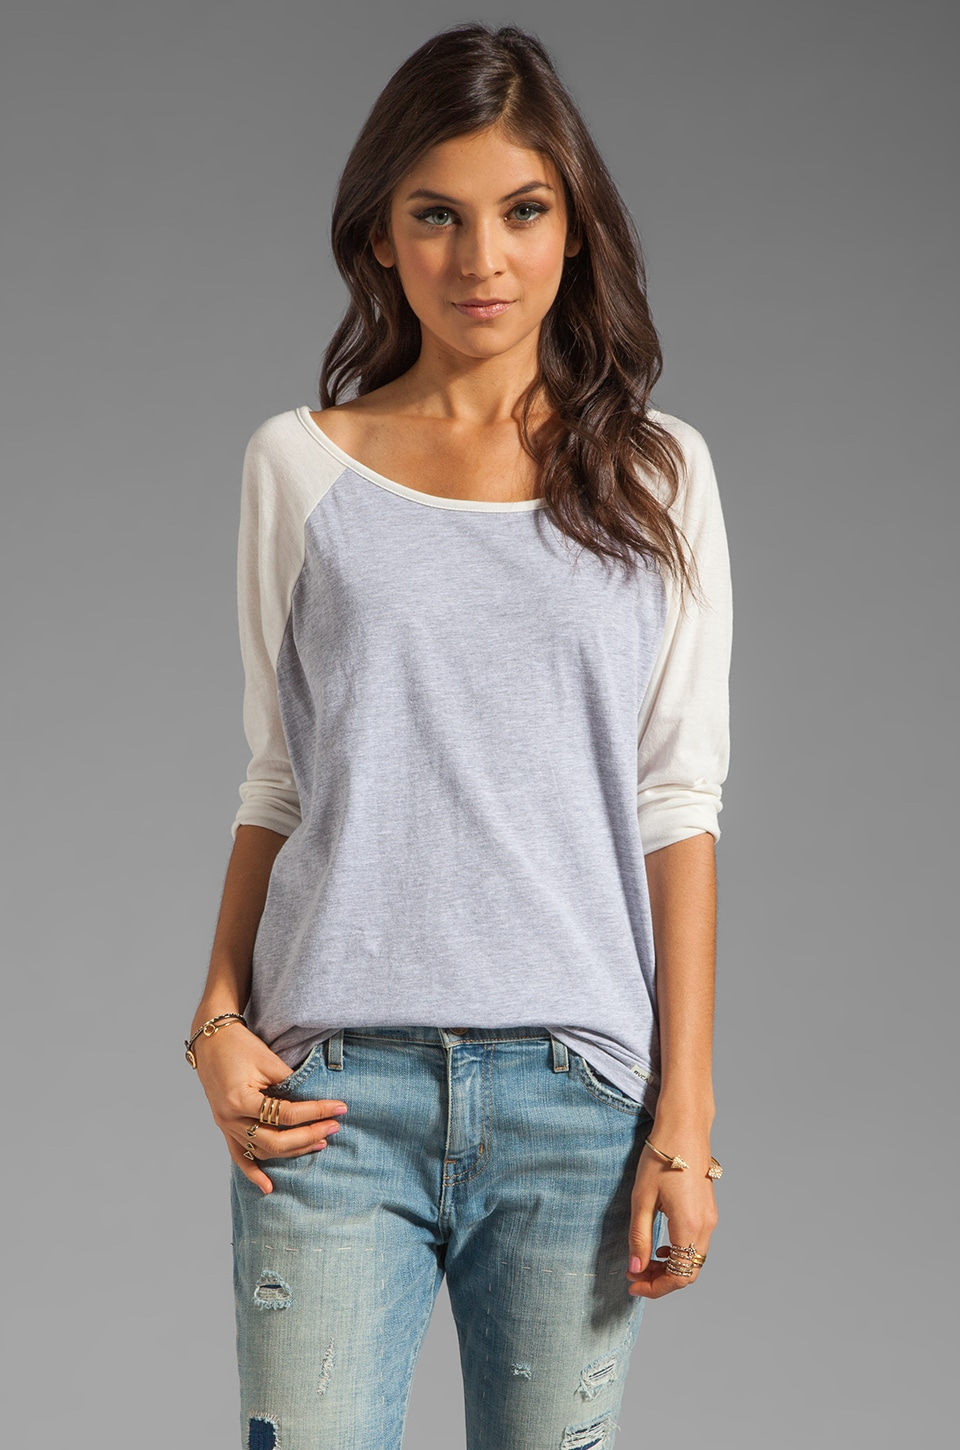 RVCA Label Ziggy Baseball Tee in Grey Noise/Marshmellow